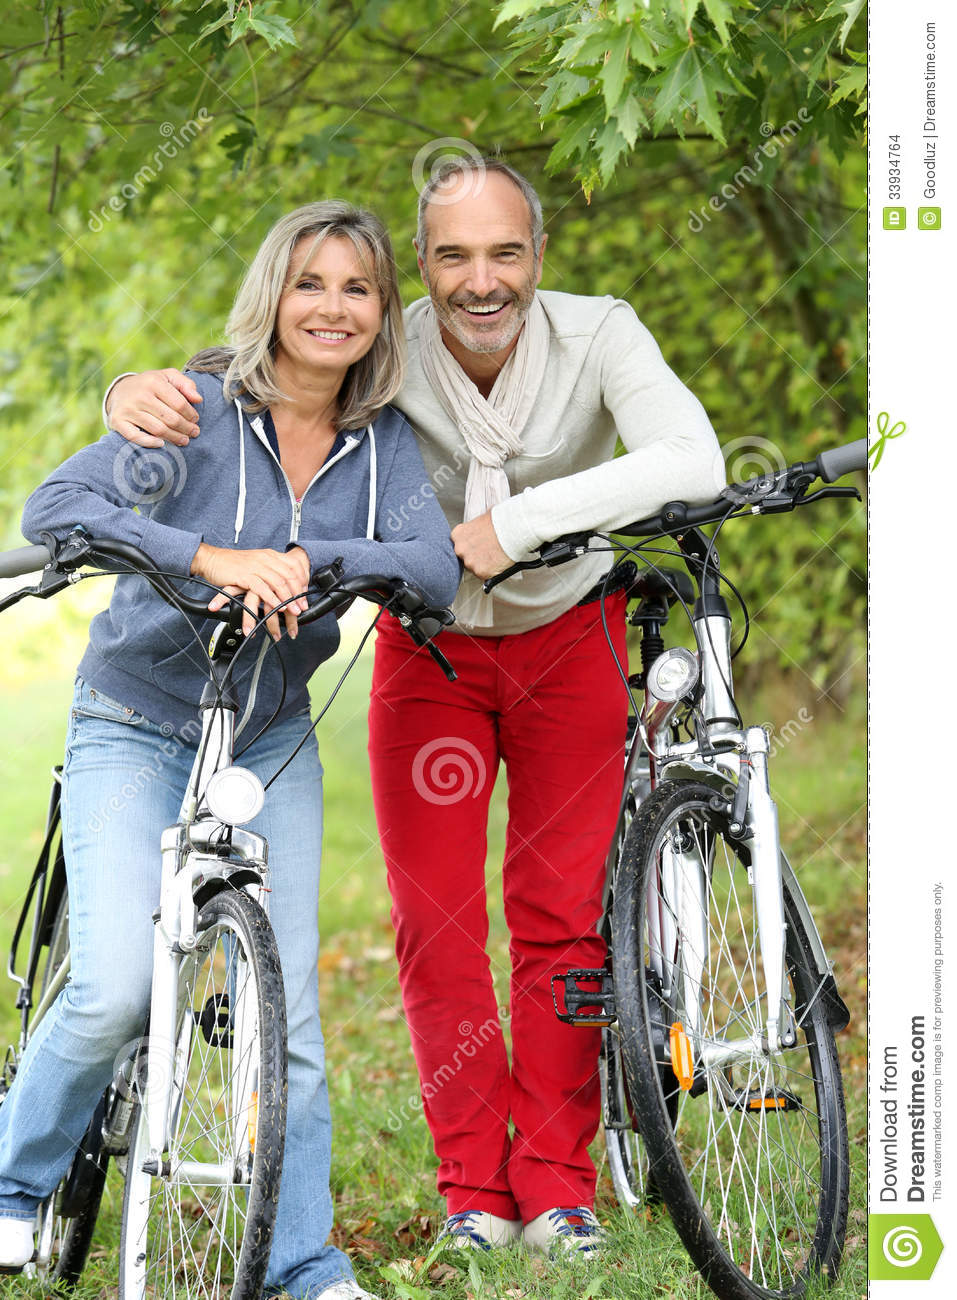 Senior couple relaxing after riding bicycle